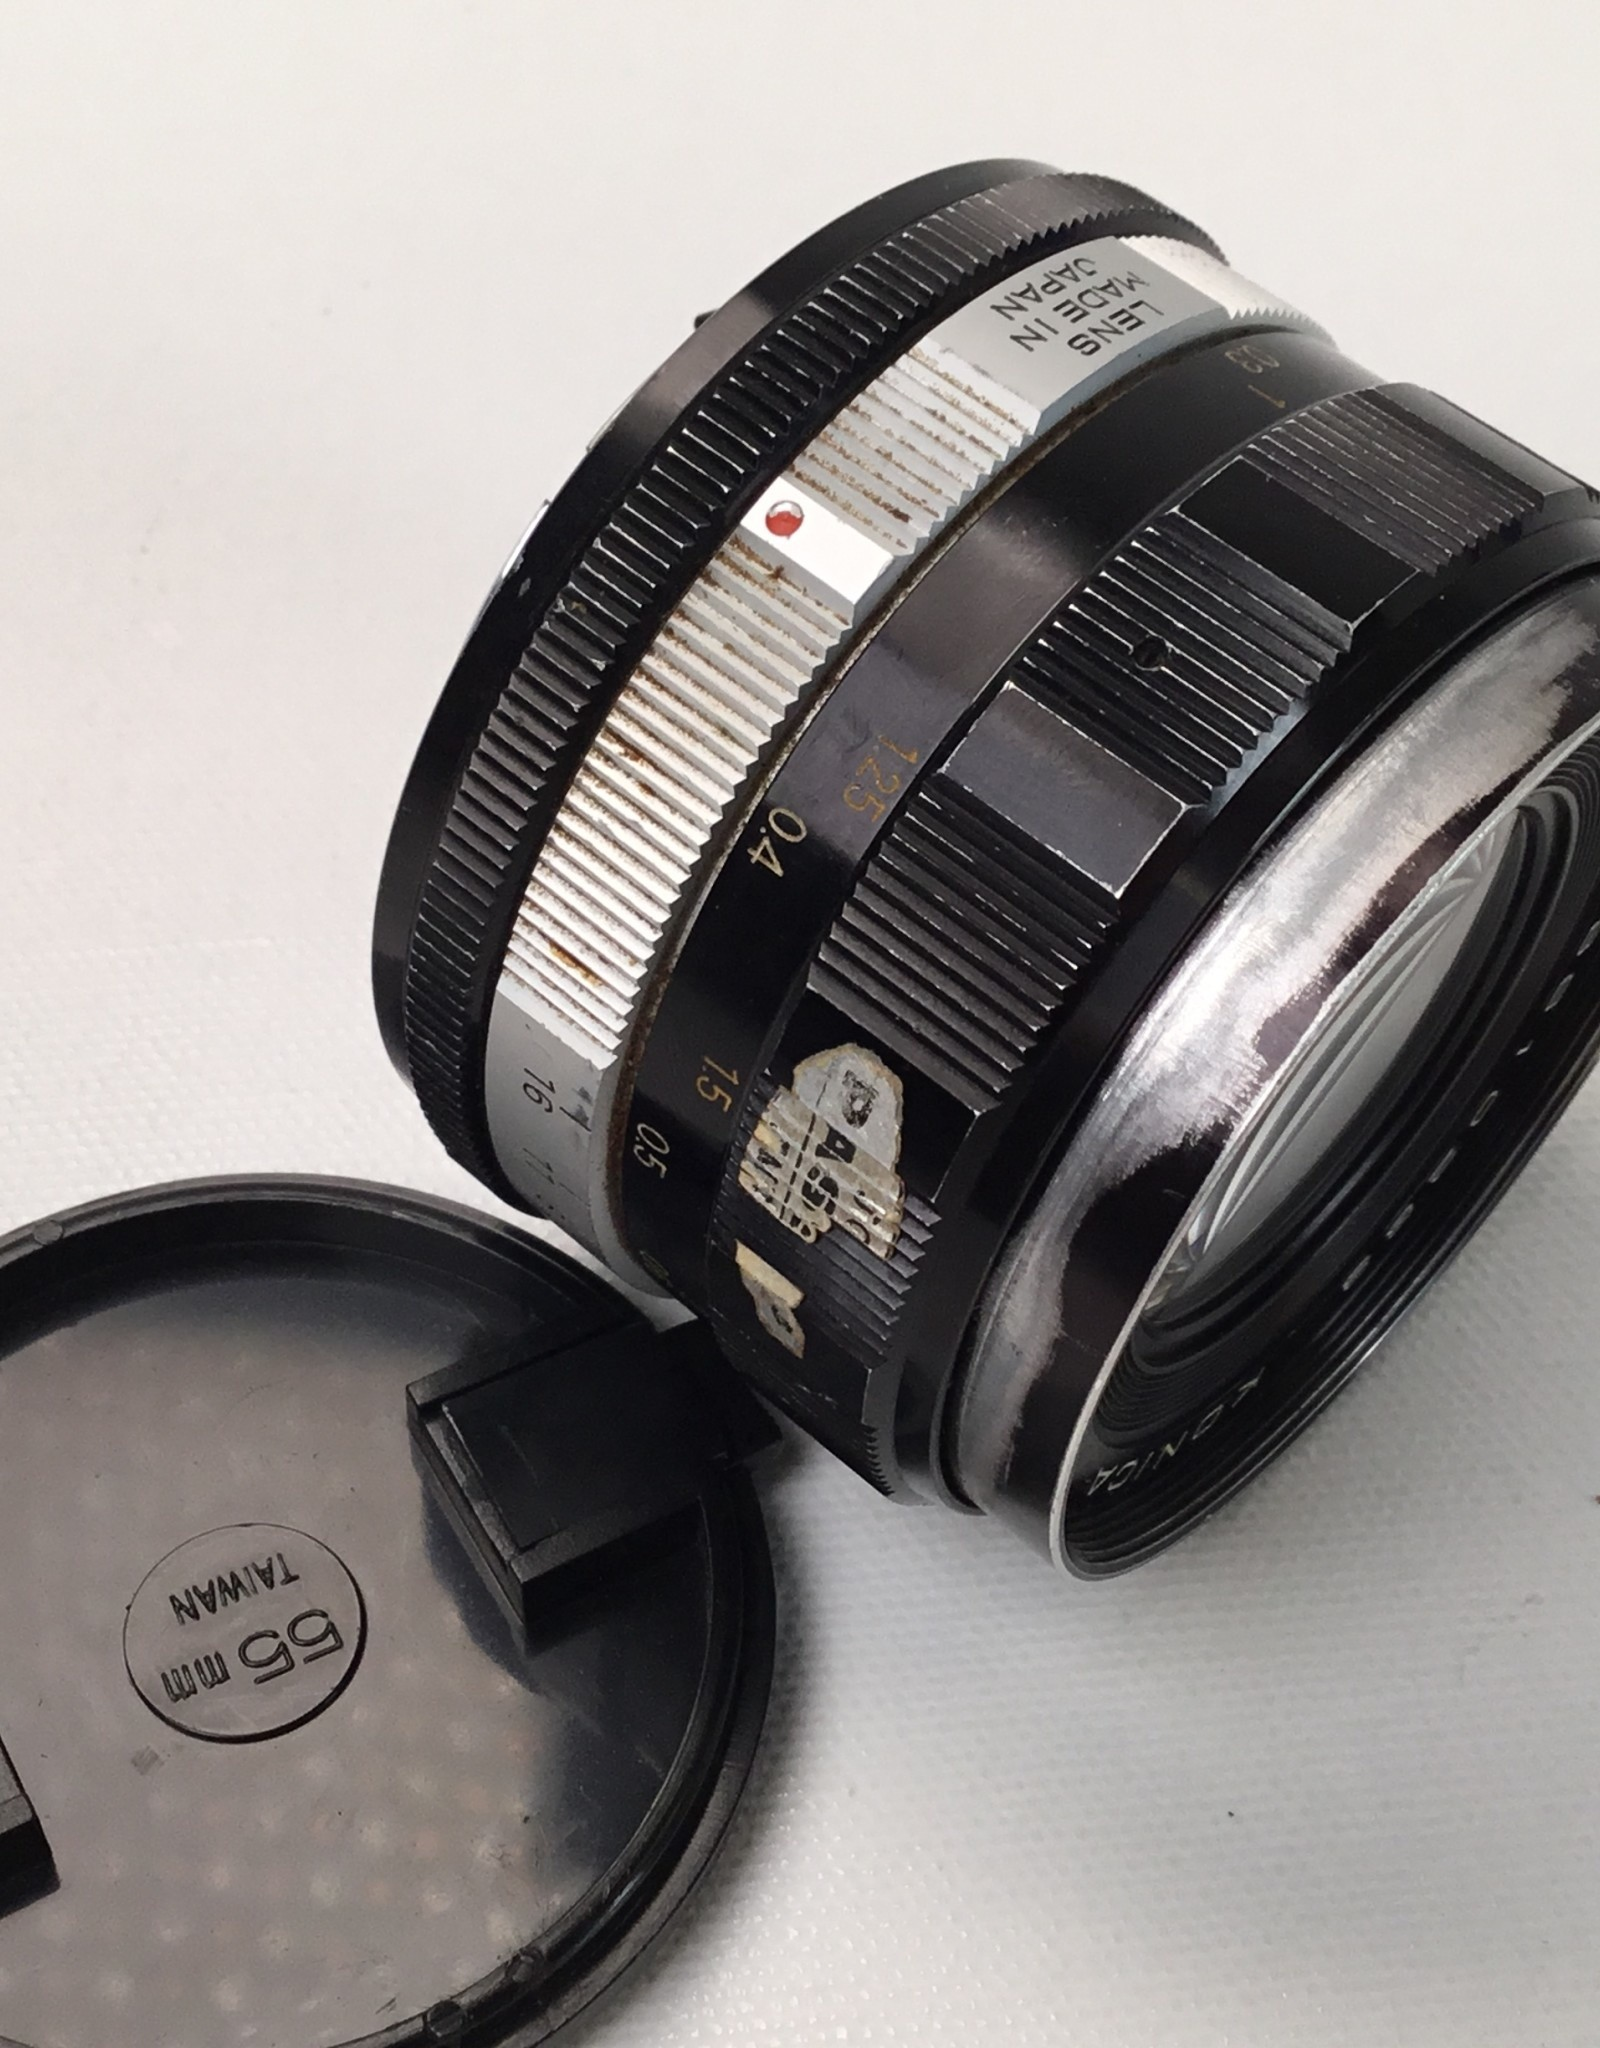 Konica AR Hexanon 28mm f3.5 Lens Used BGN